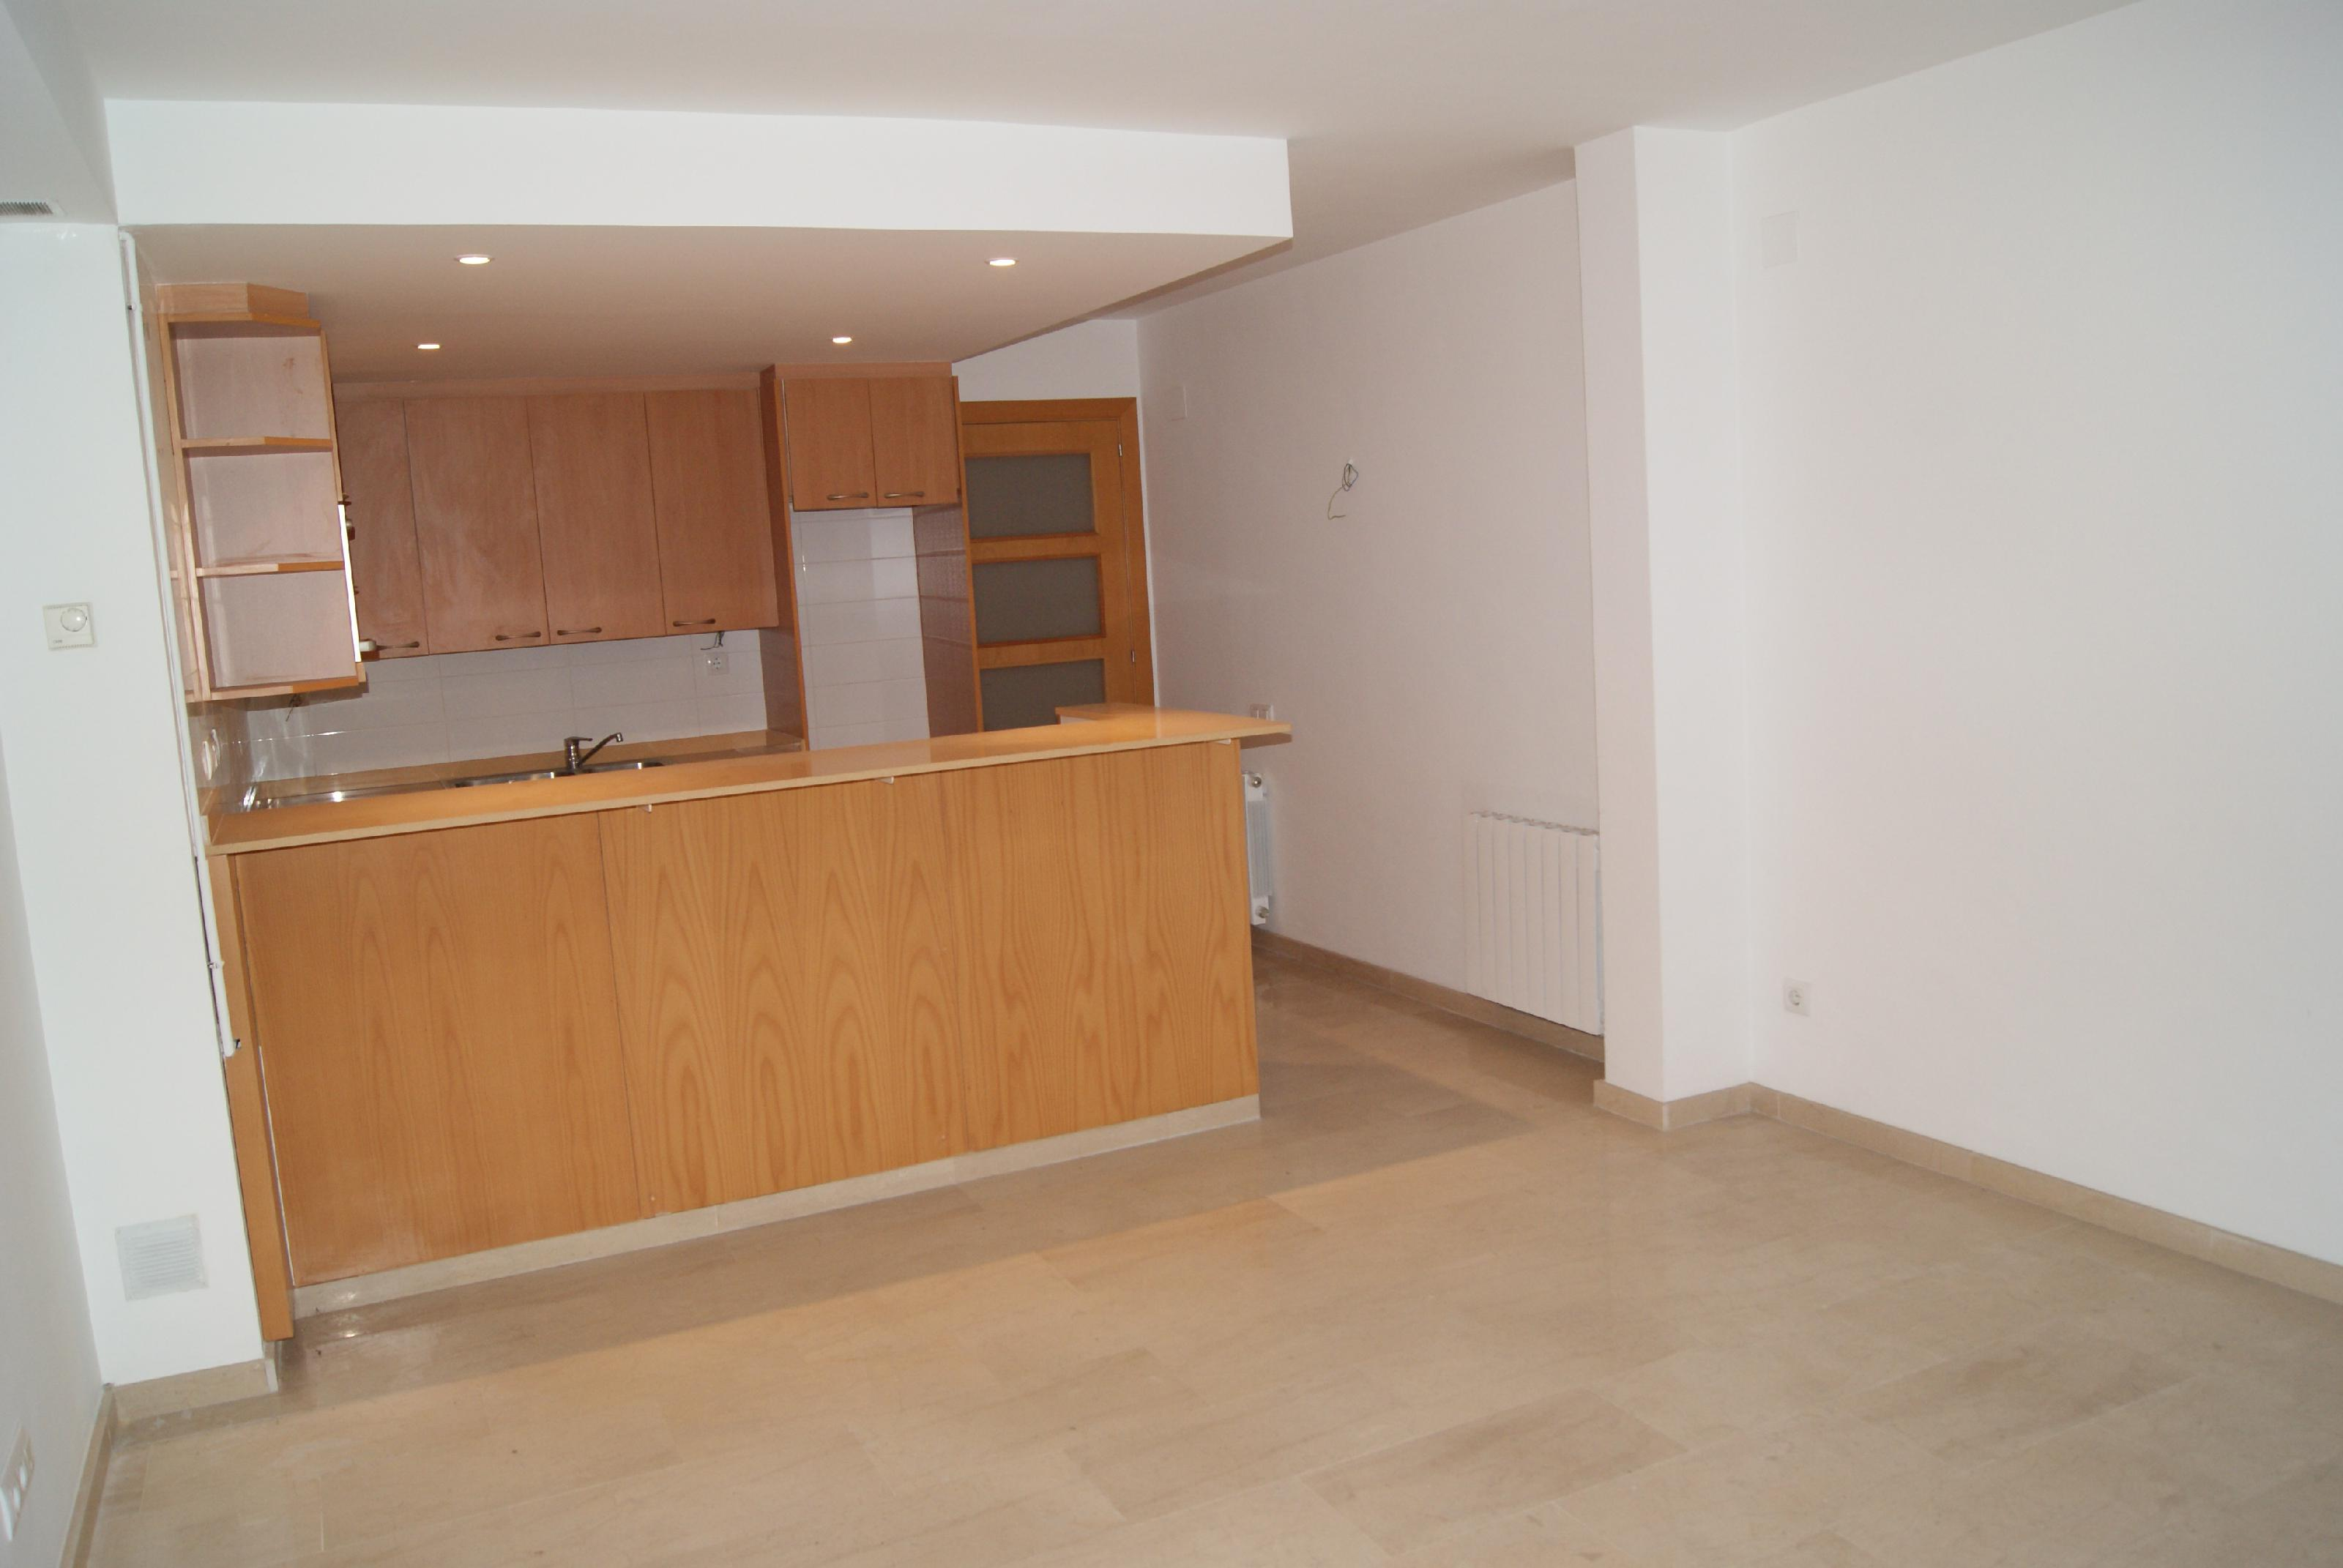 235222 Duplex for sale in Sants-Montjuïc, La Marina de Port 11